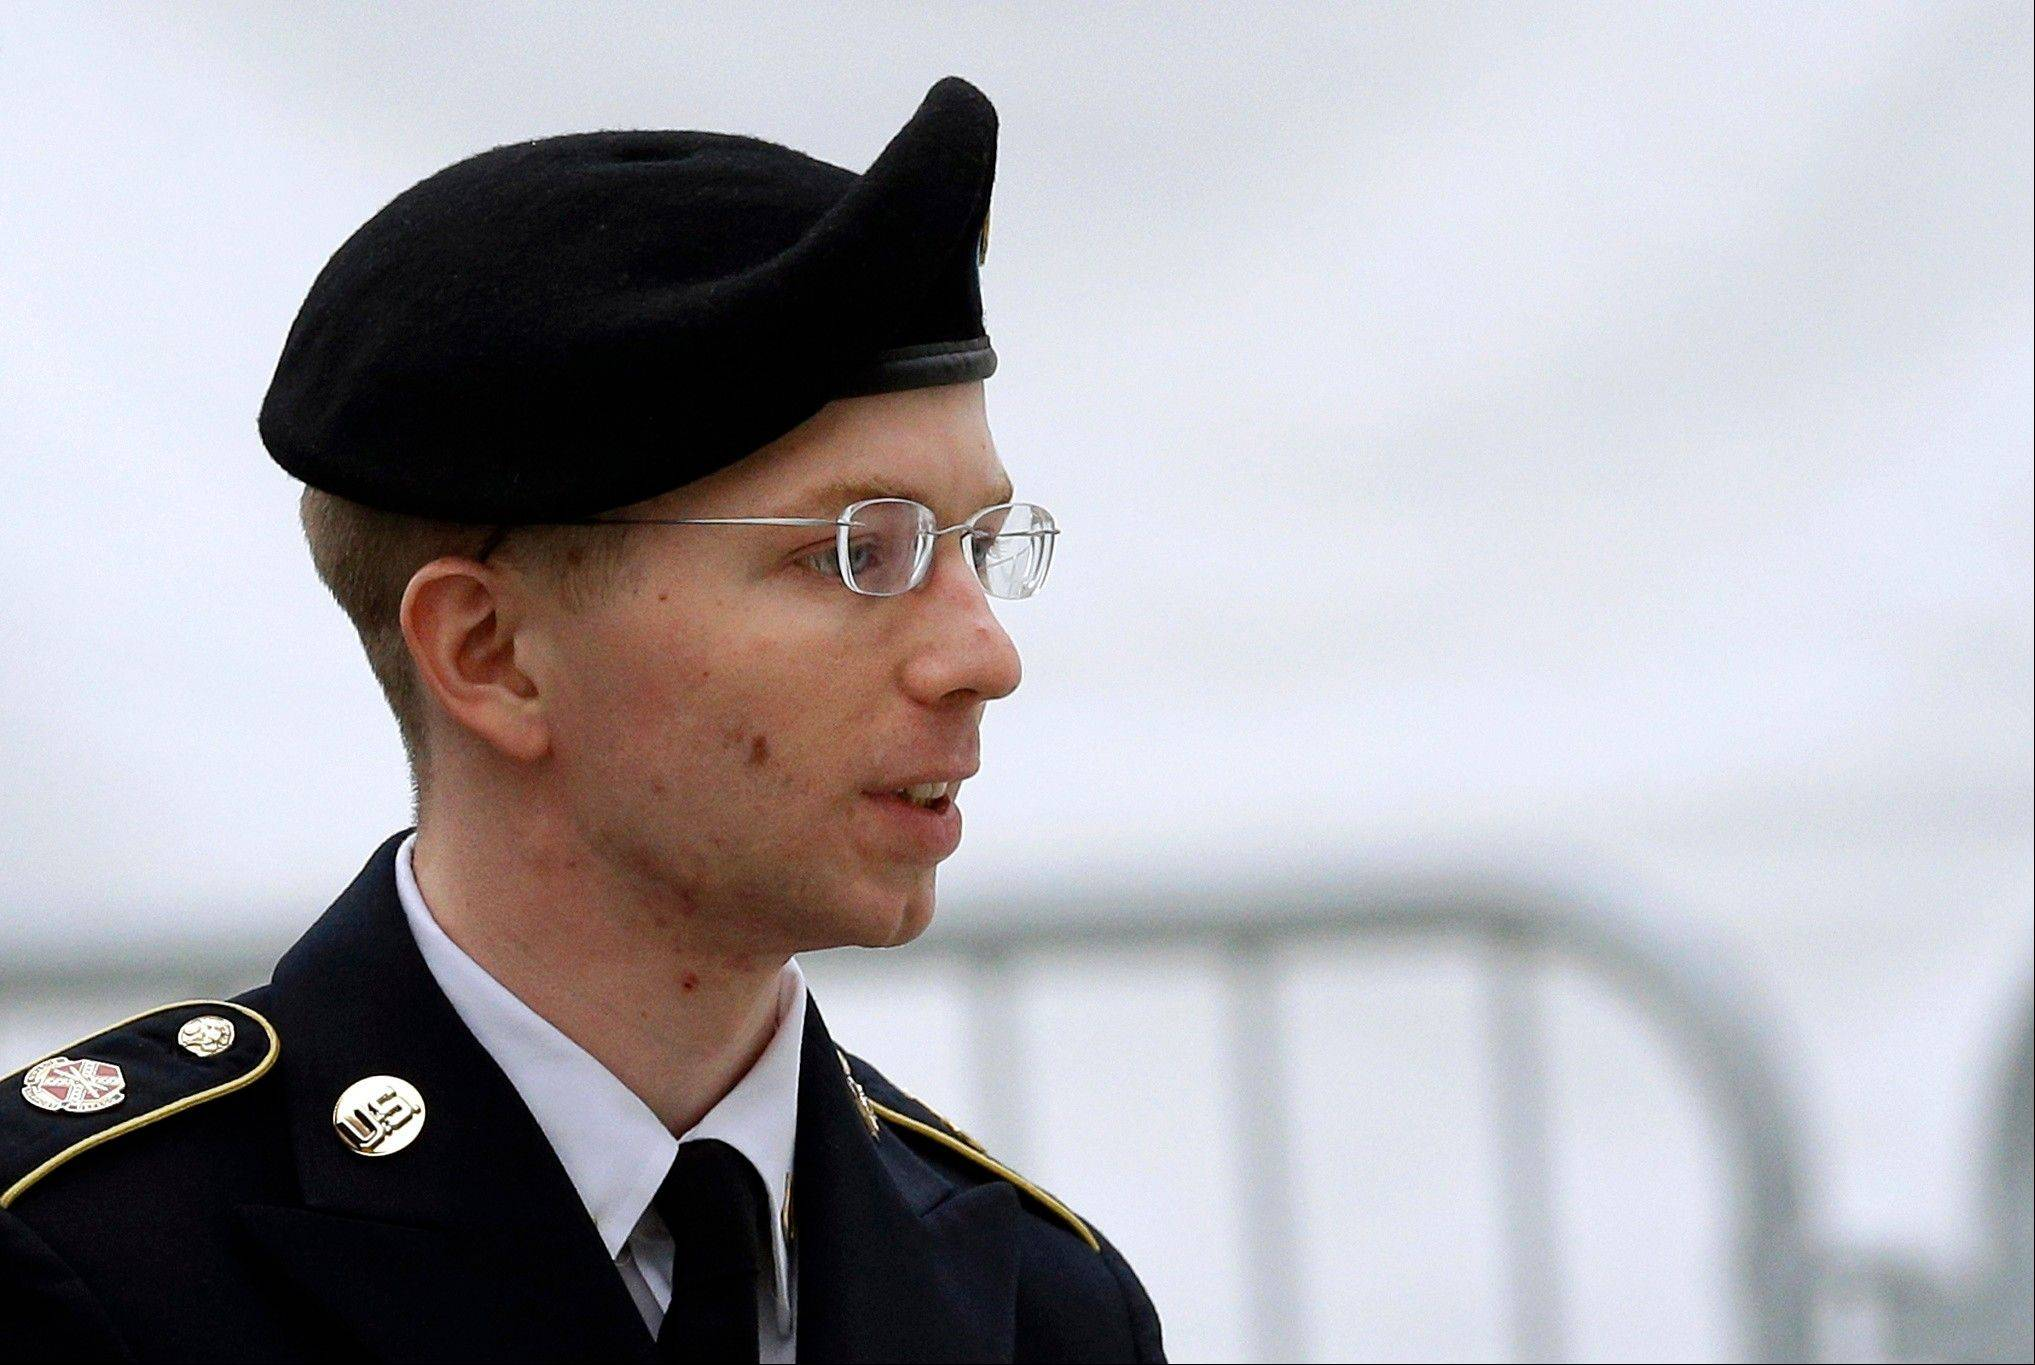 ASSOCIATED PRESS Army Pfc. Bradley Manning Was arrested in Iraq more than three years ago and charged in the biggest leak of classified information in U.S. history.